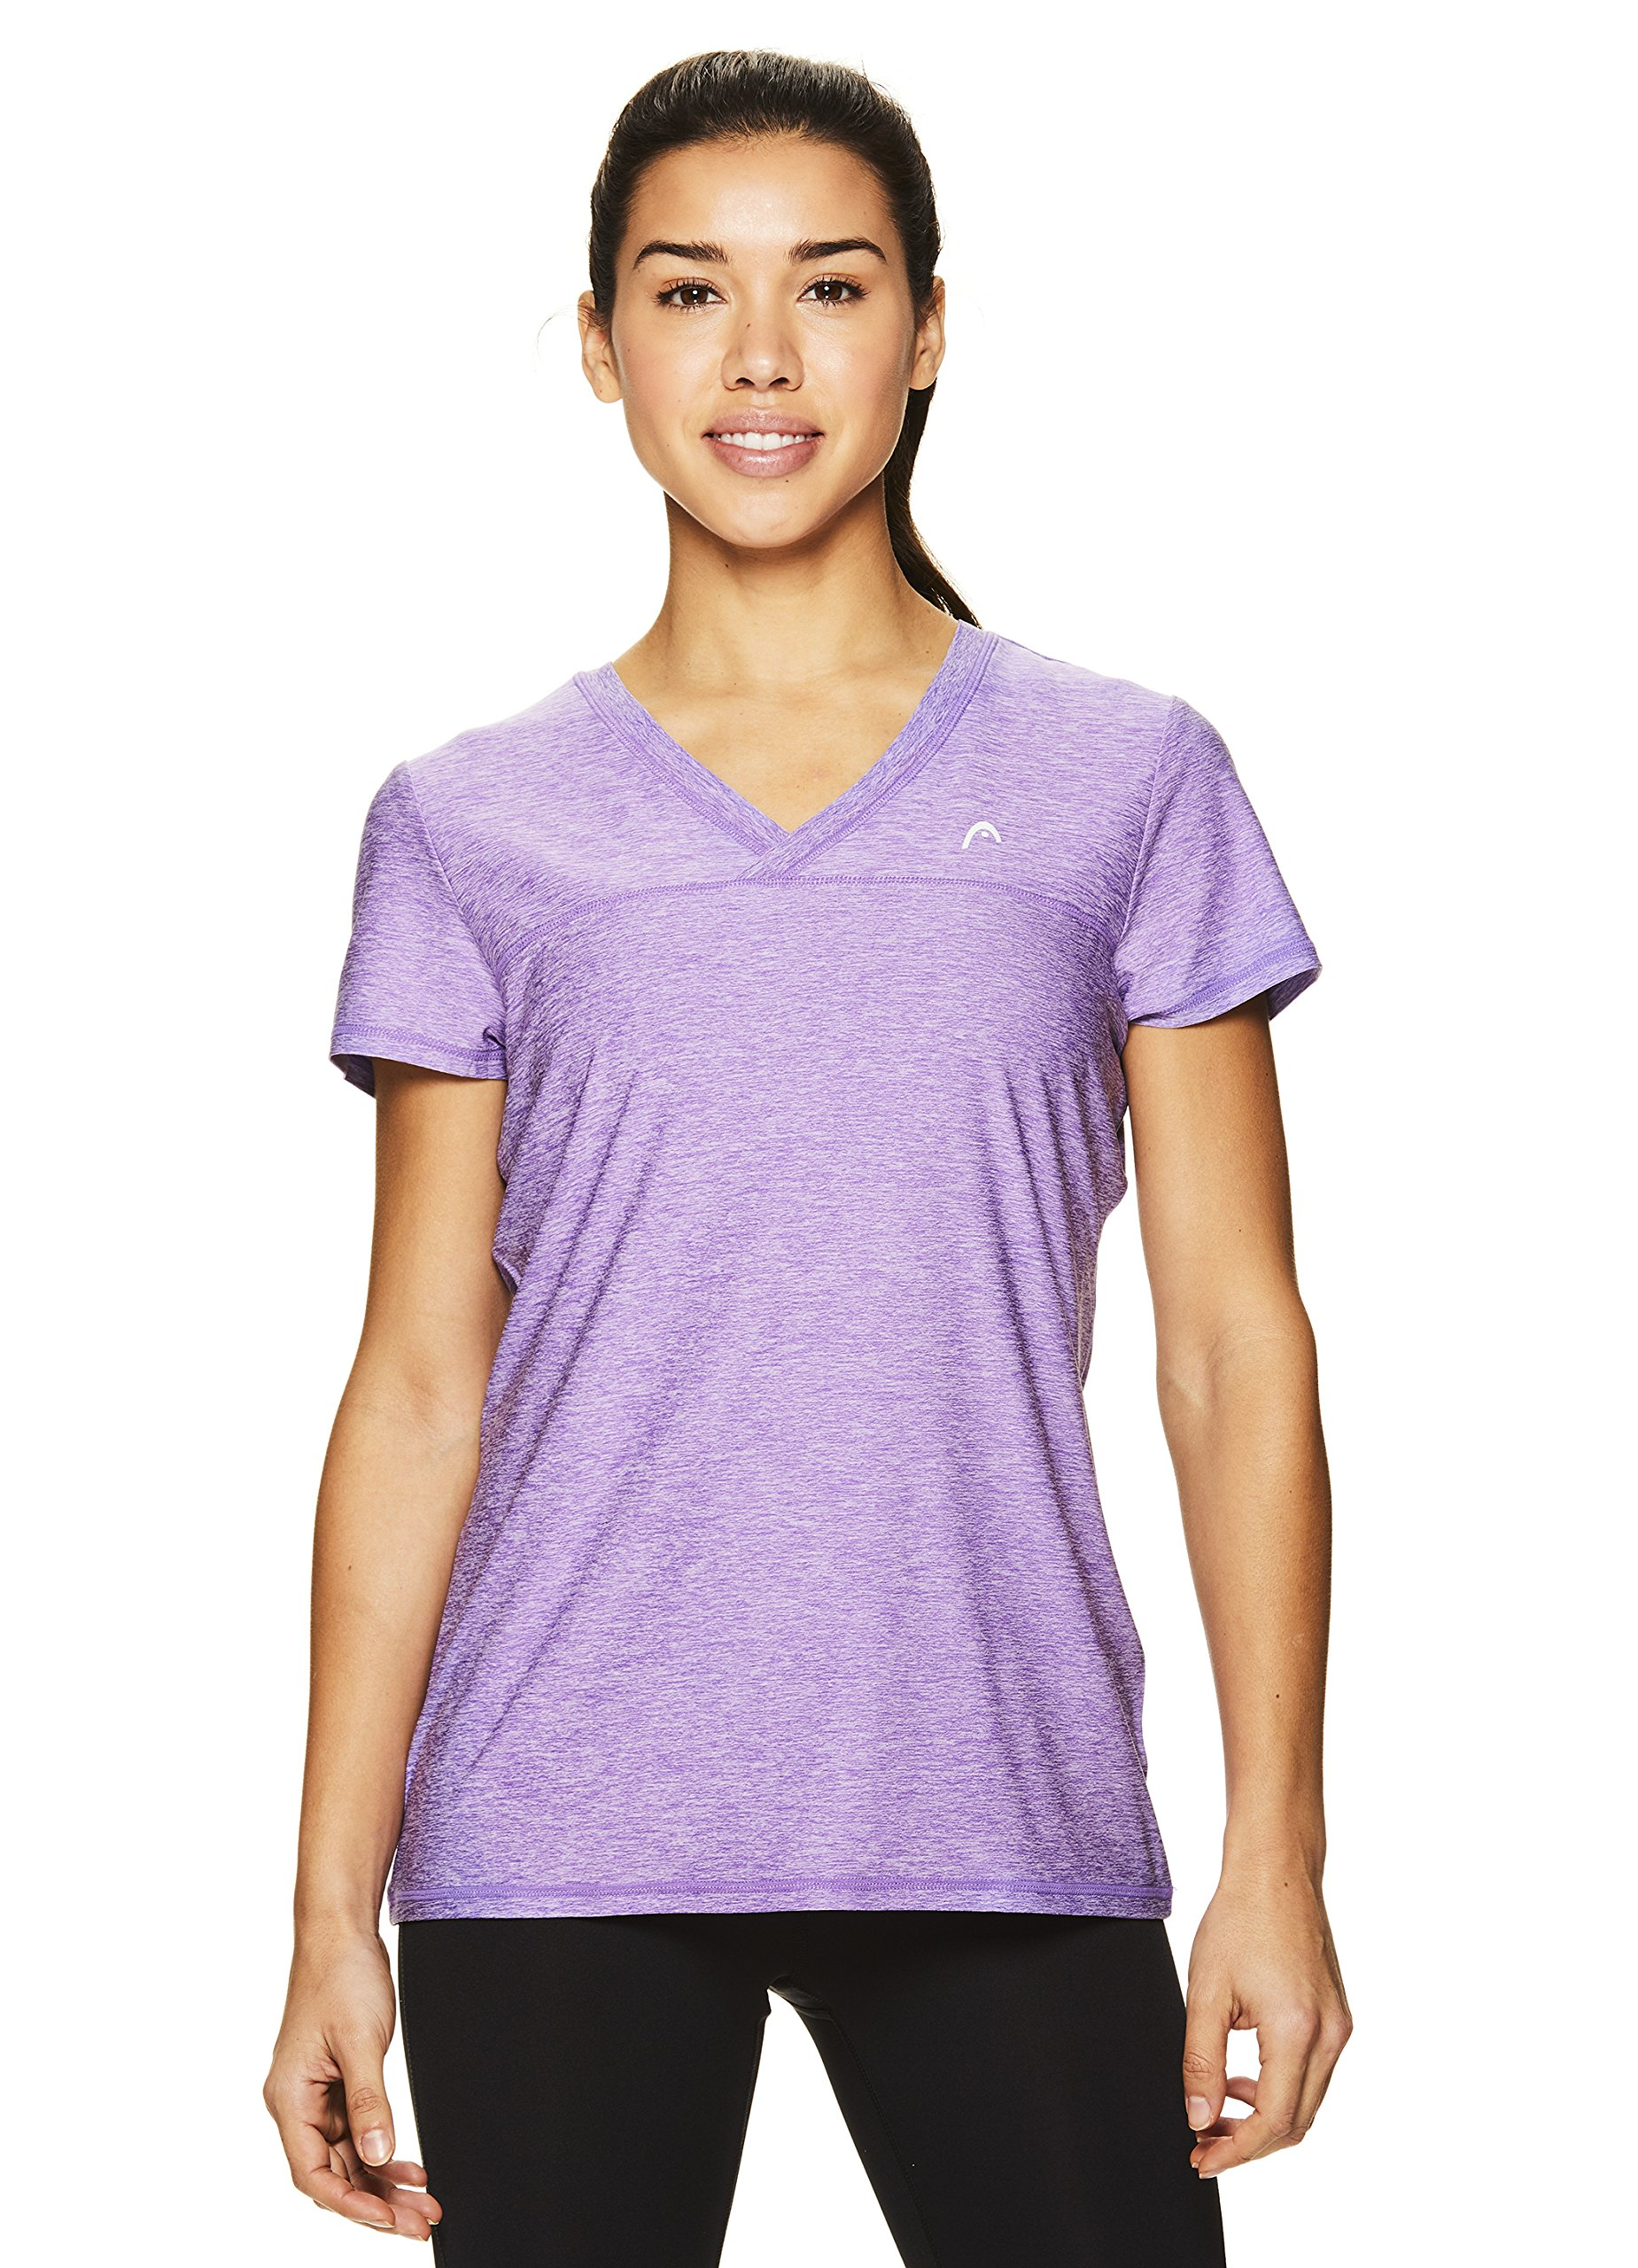 HEAD Women's High Jump Short Sleeve Workout T-Shirt - Performance V-Neck Activewear Top - Chive Blossom Heather, X-Small by HEAD (Image #1)